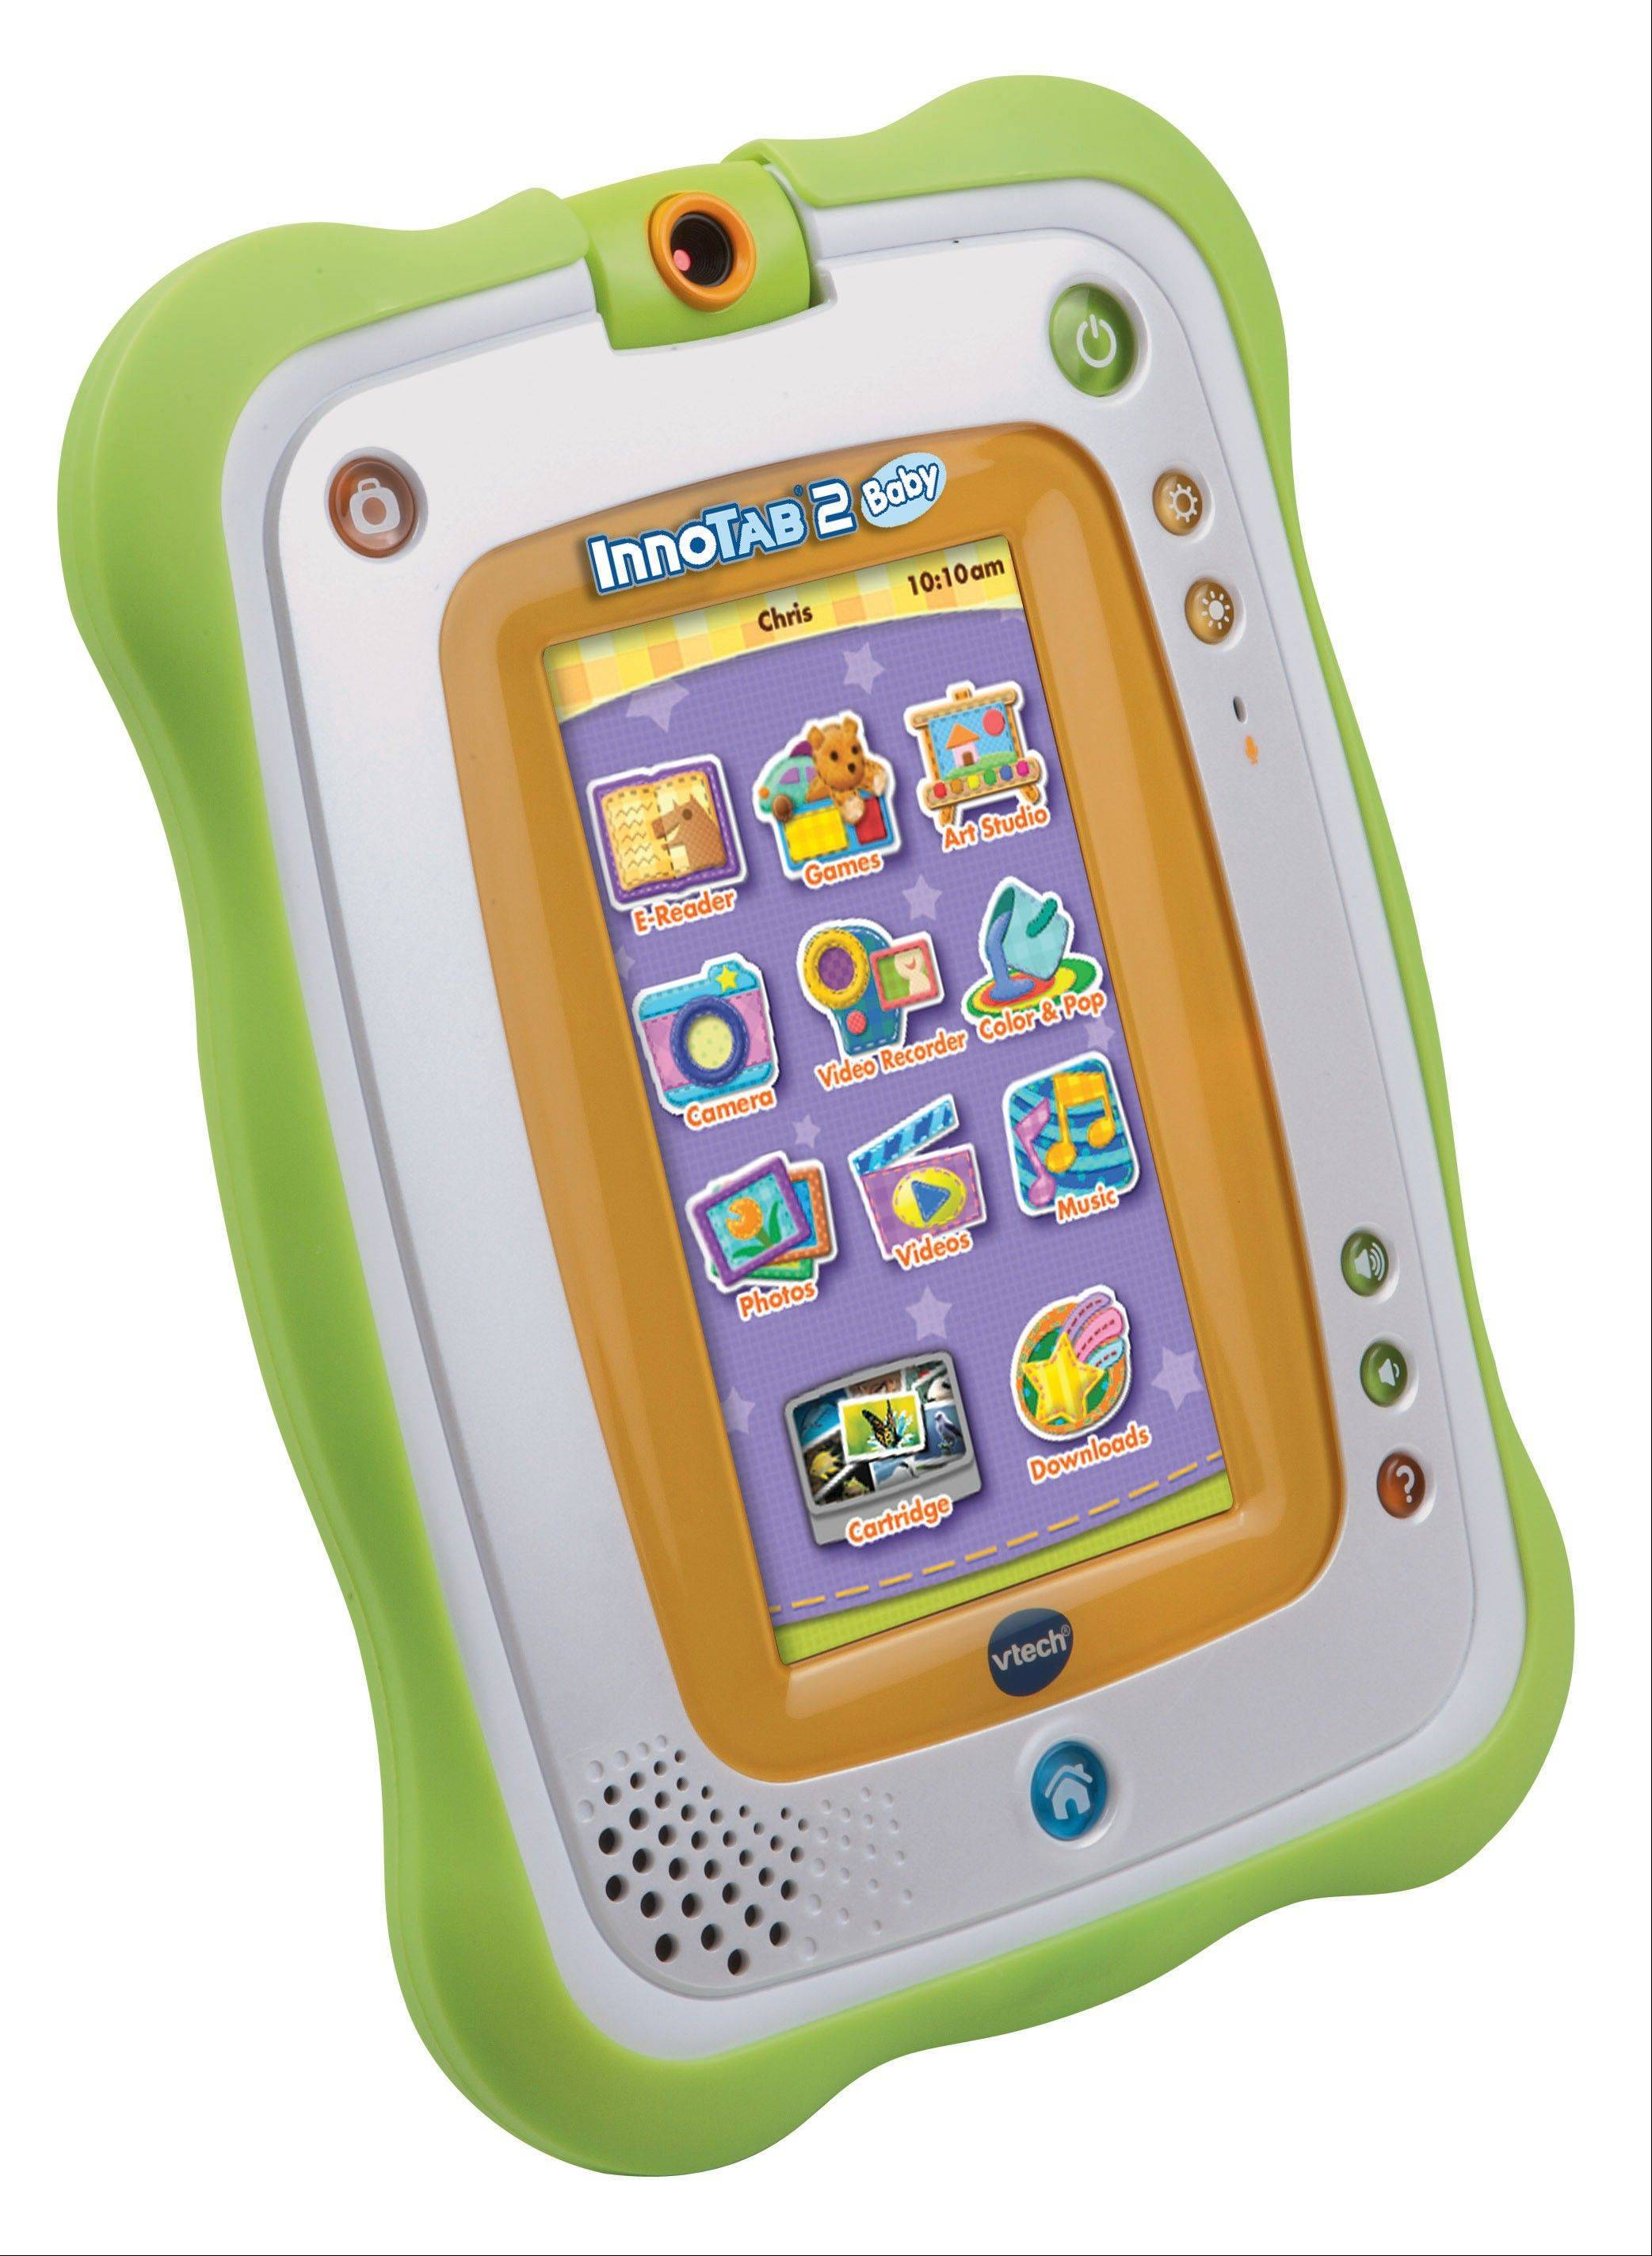 InnoTab2 includes a photo/video camera, allows kids to read animated e-books, has a microphone and tilt sensor for a variety of games and learning activities. Also includes an art studio and MP3 player for creative activities. Durable material allows young children to have a tablet of their own without worrying about them breaking or destroying yours.